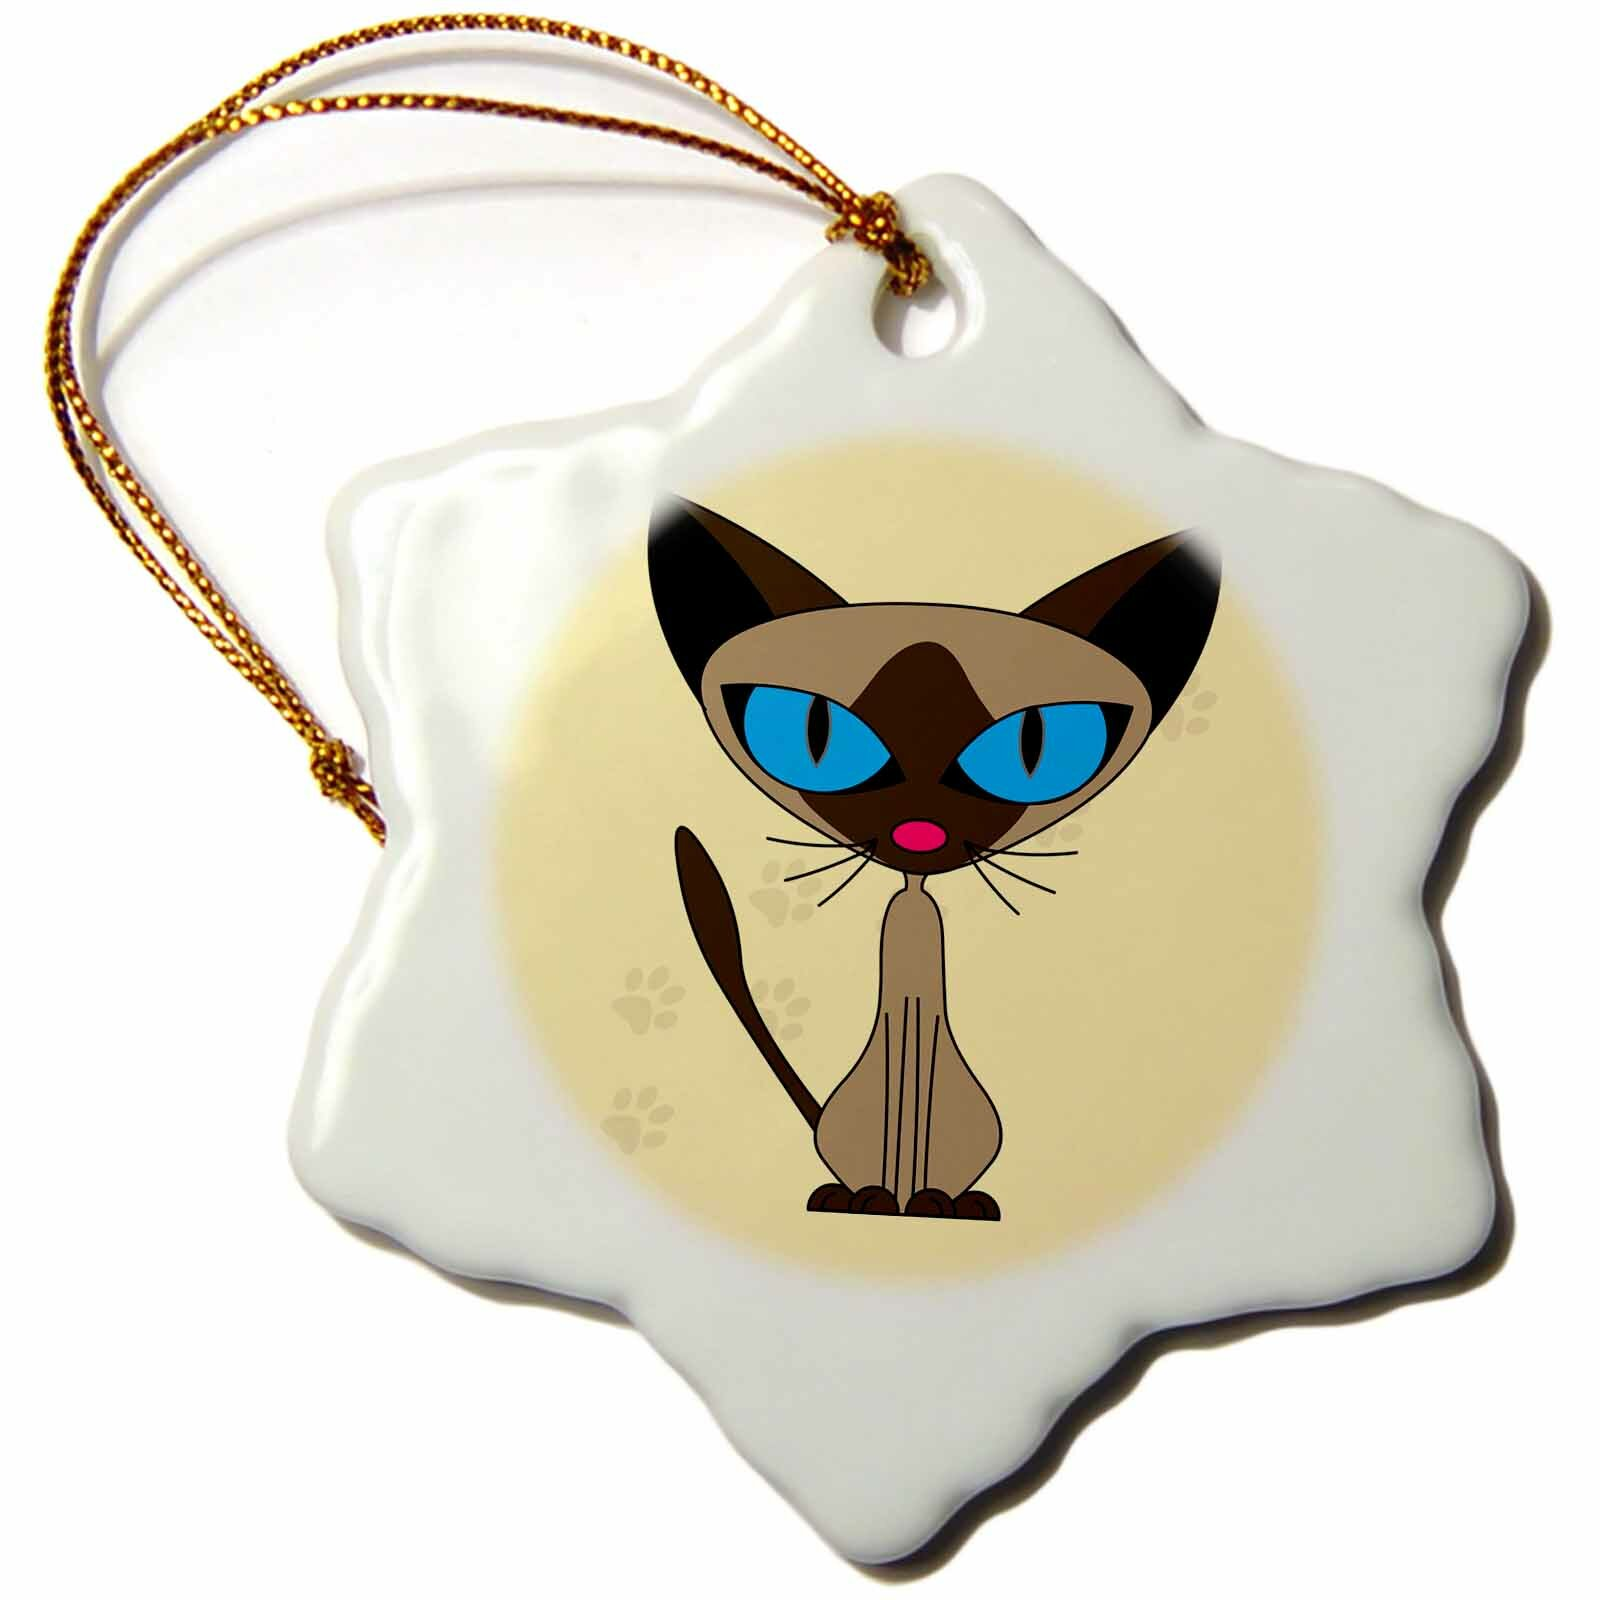 The Holiday Aisle Cute Siamese Cat Paw Prints Design Holiday Shaped Ornament Wayfair